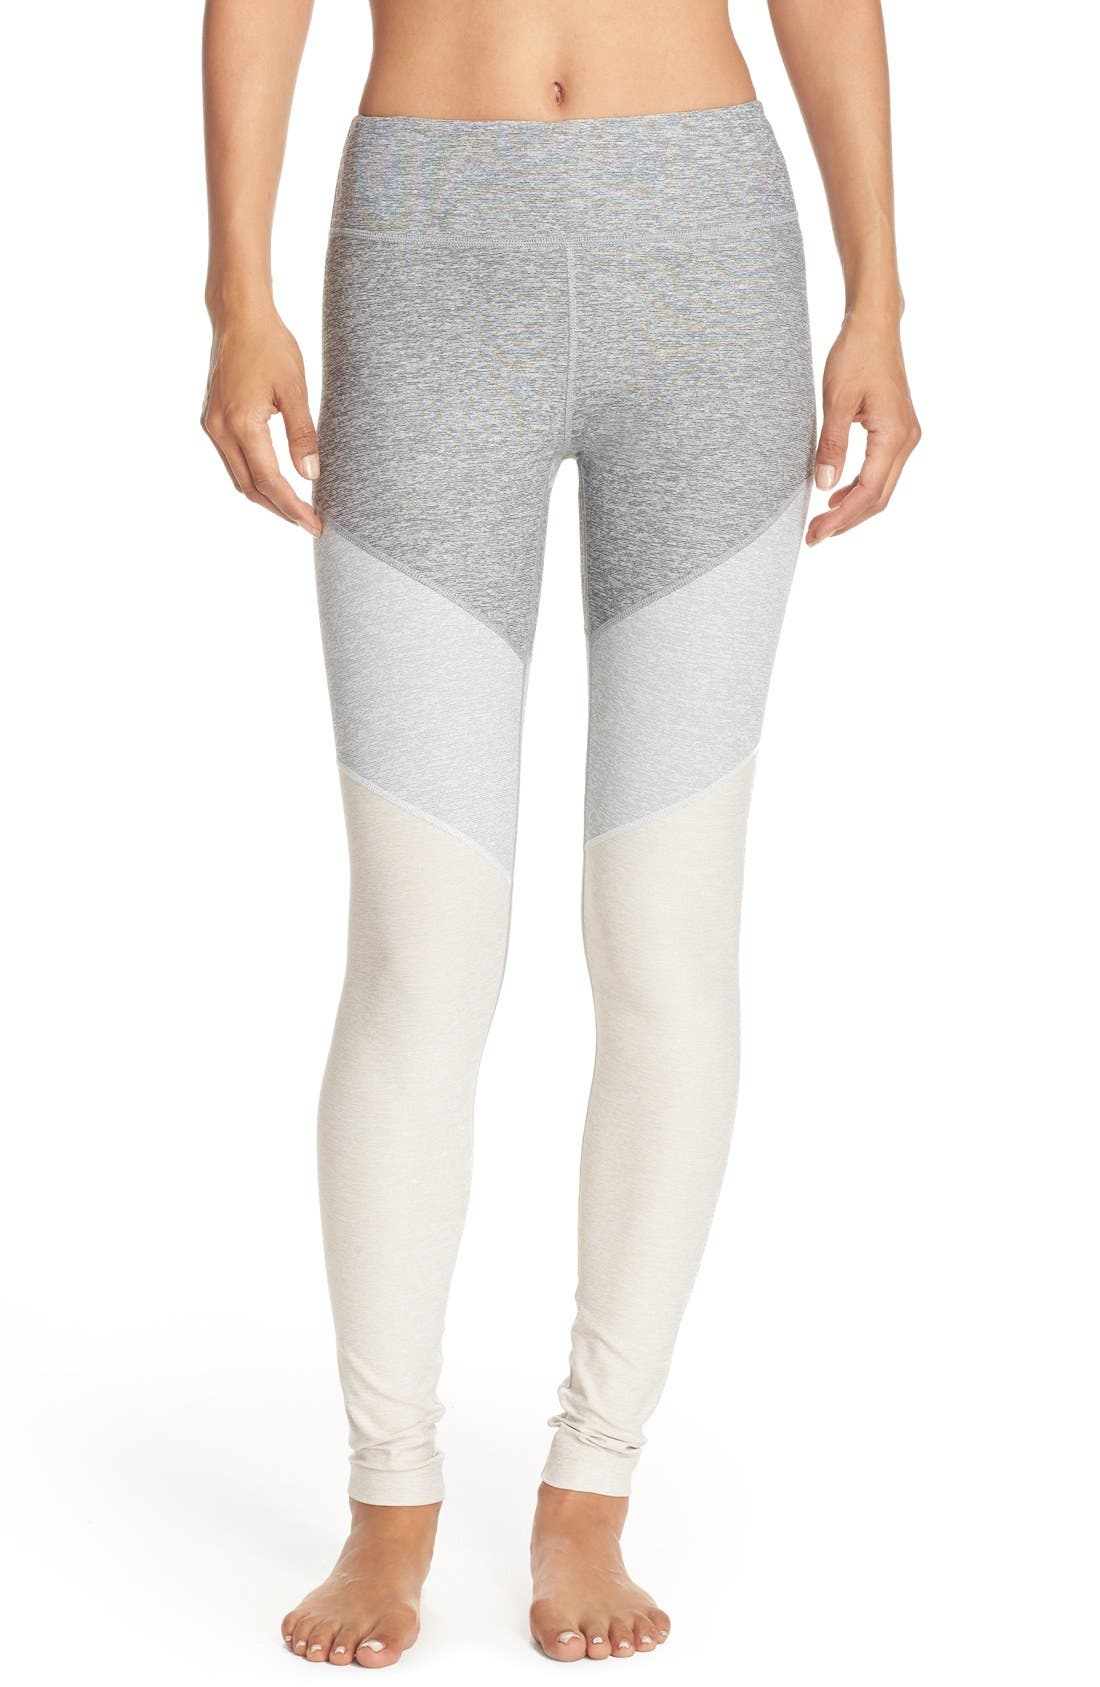 Alternate Image 1 Selected - Outdoor Voices 'Springs' Colorblock Leggings